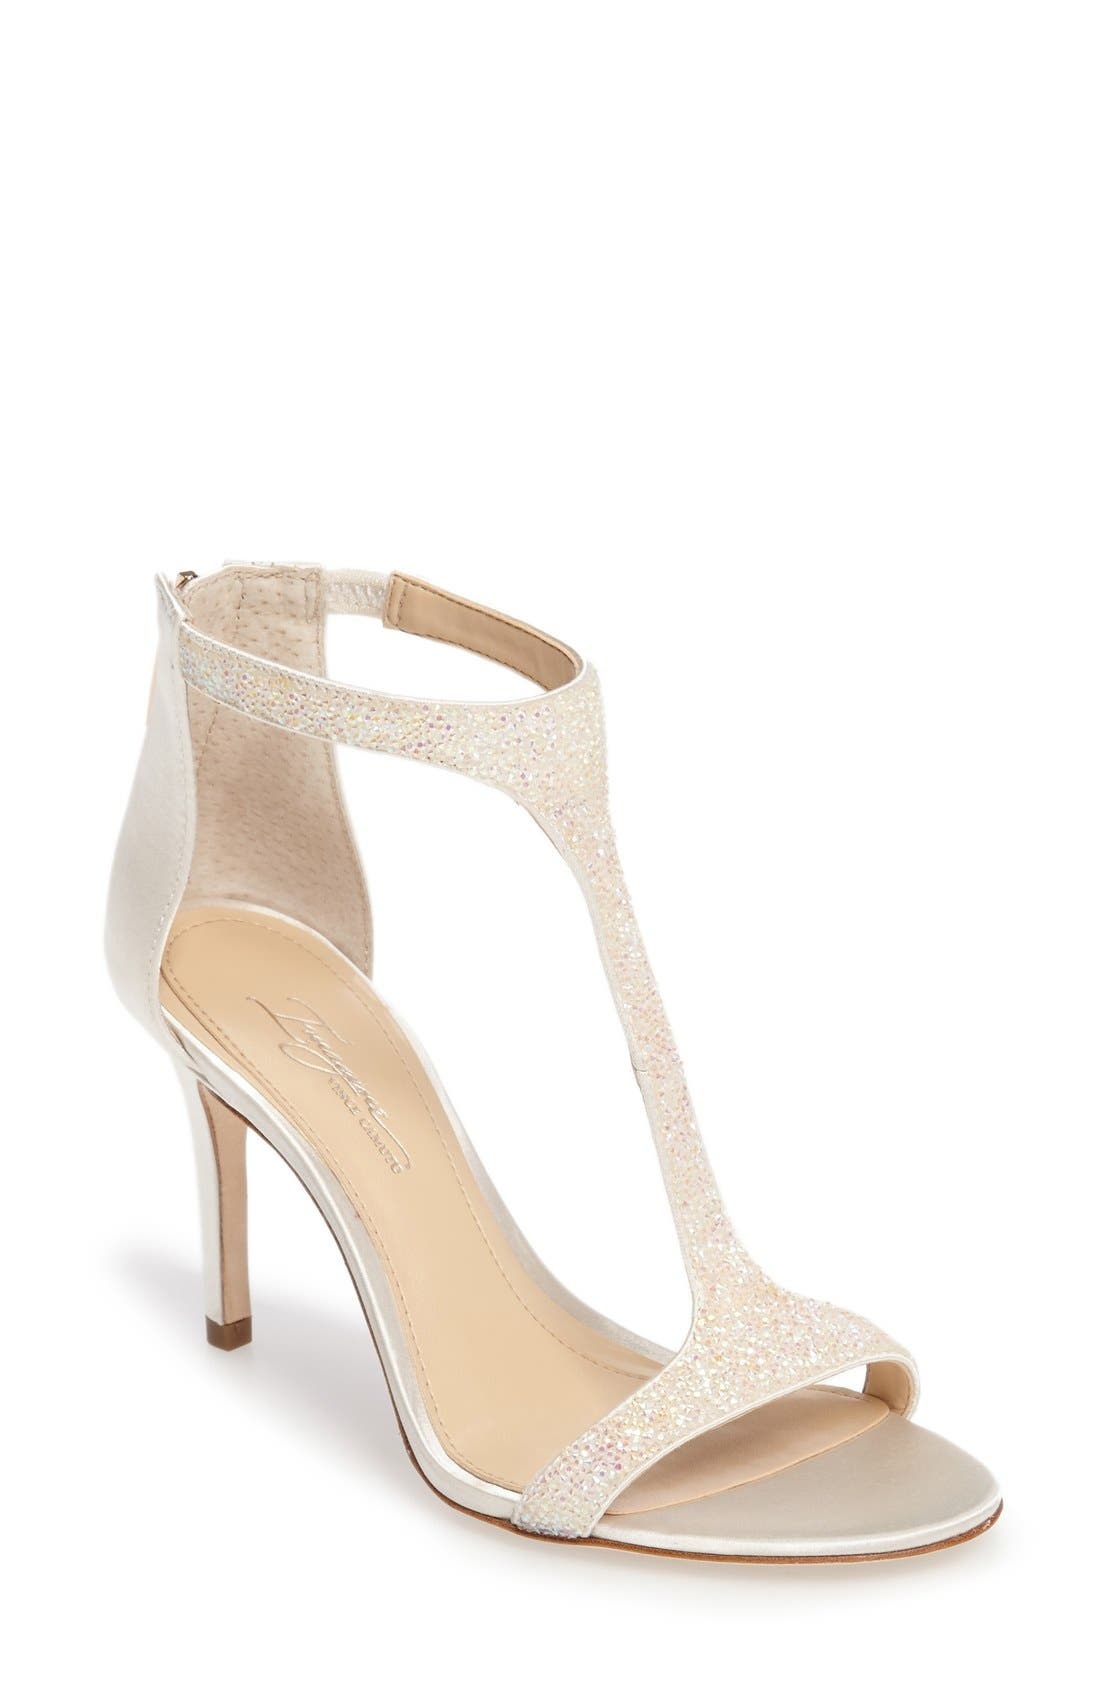 Imagine by Vince Camuto 'Phoebe' Embellished T-Strap Sandal (Women)